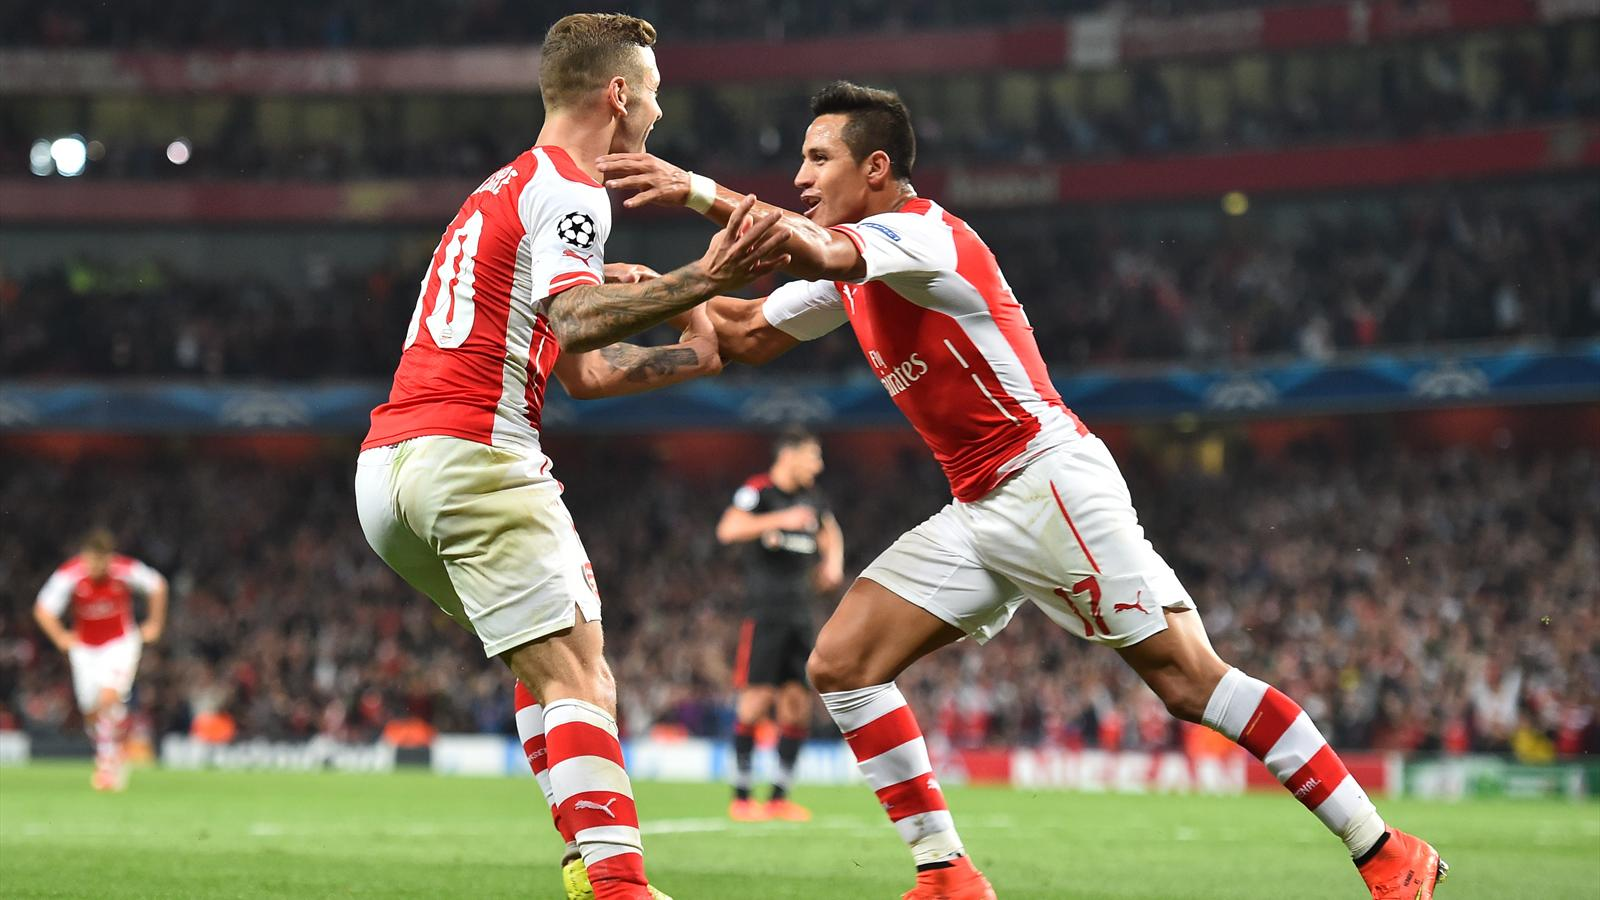 Arsenal bat Besiktas (1-0) et disputera la phase de poules de la Ligue des champions